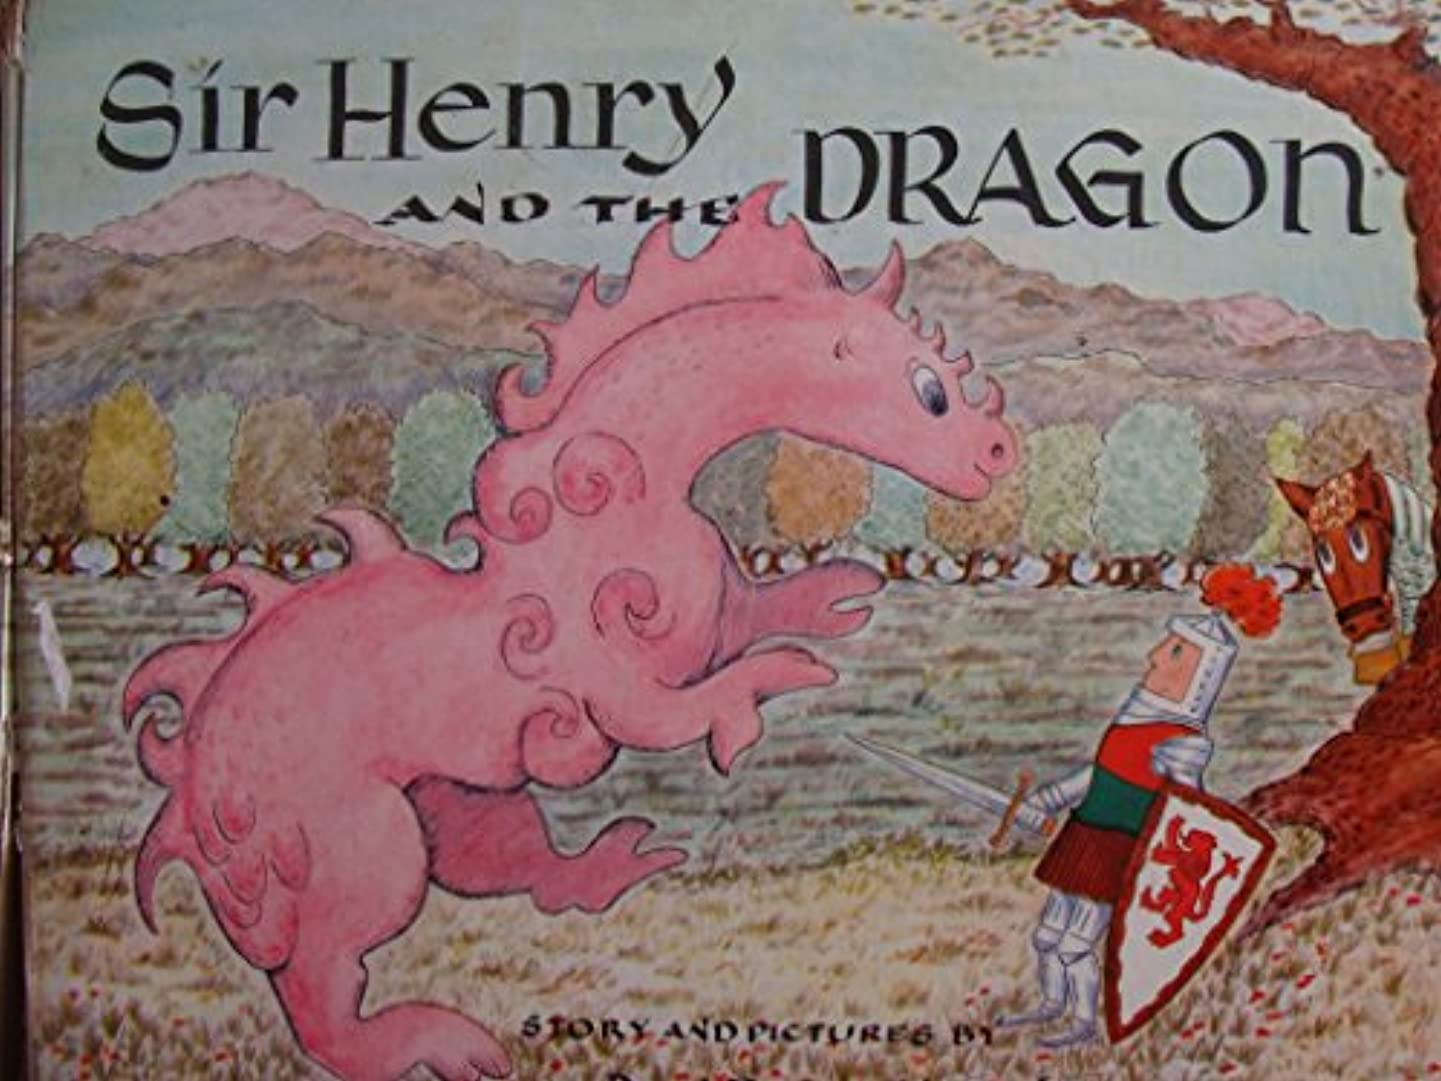 Sir Henry and the Dragon